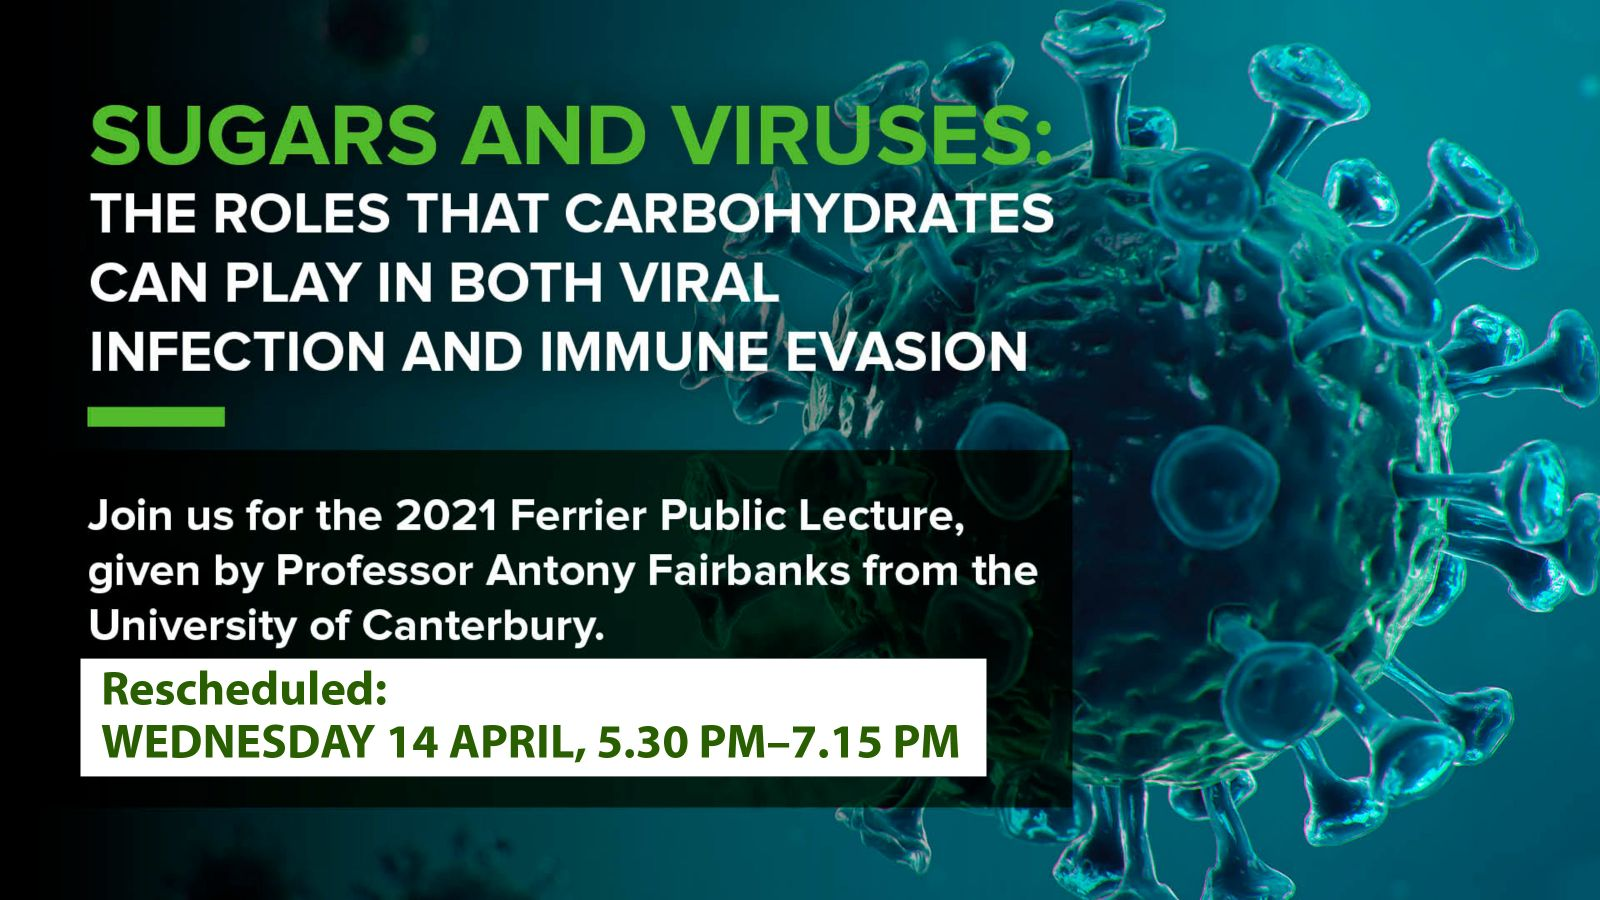 depiction od the SARS-CoV2 virus with invitation text above